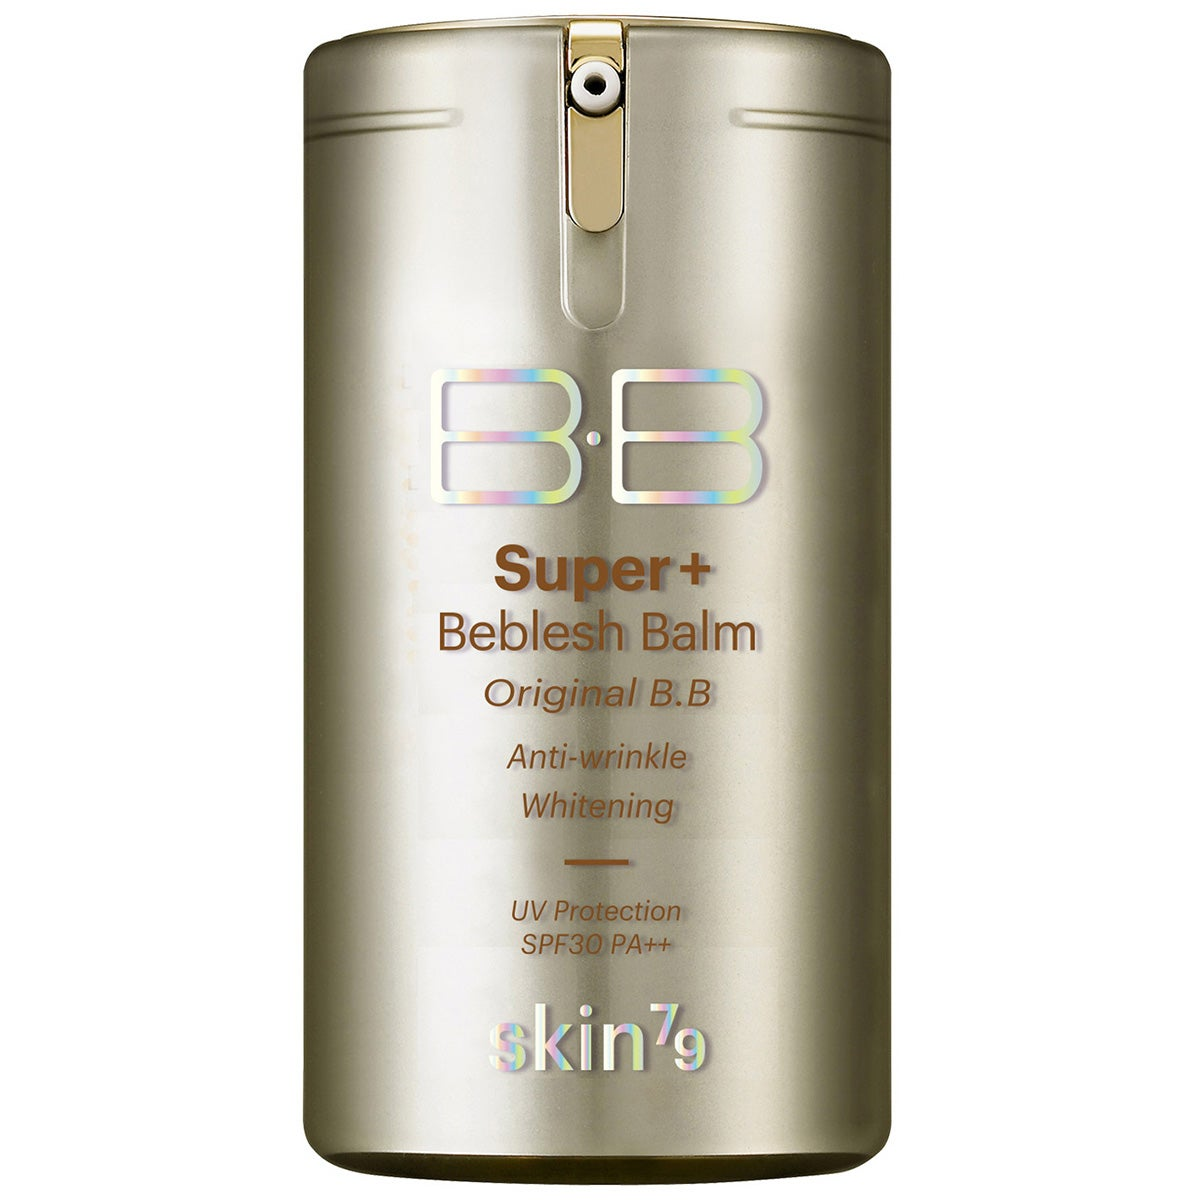 Super+ Beblesh Balm SPF 30 PA++ Gold, 40 g Skin79 Foundation